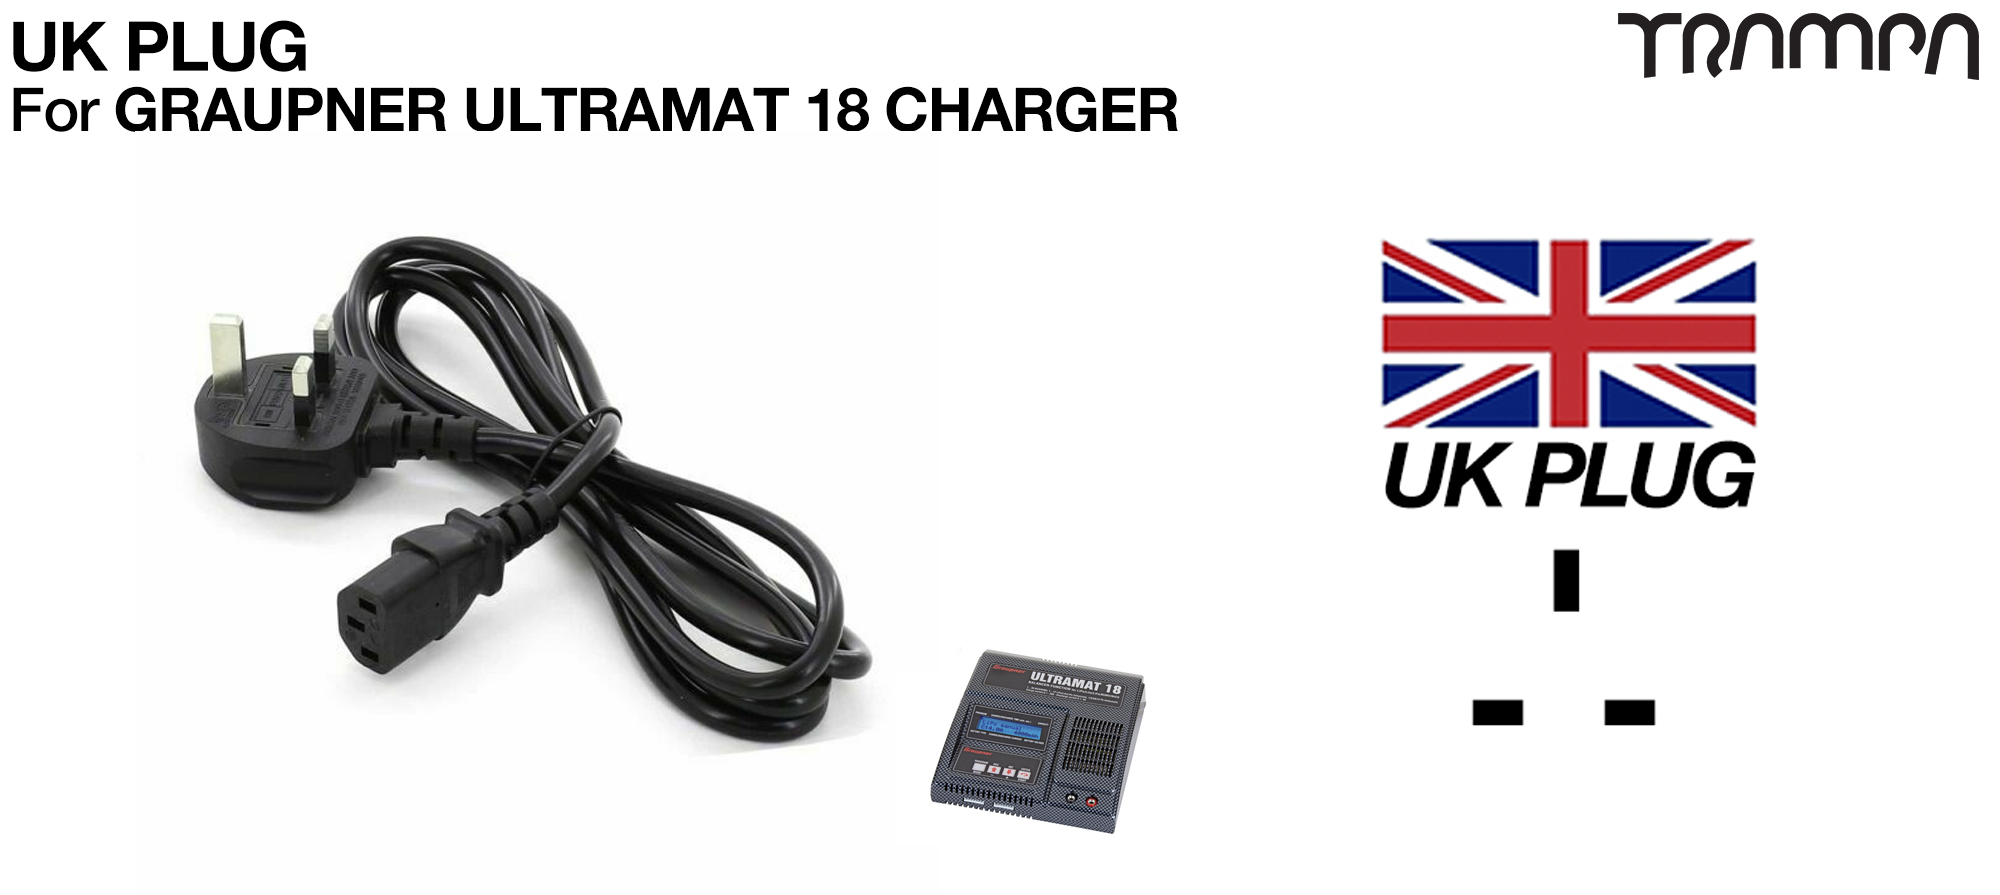 Please supply me with a UK Plug with the Graupner Charger